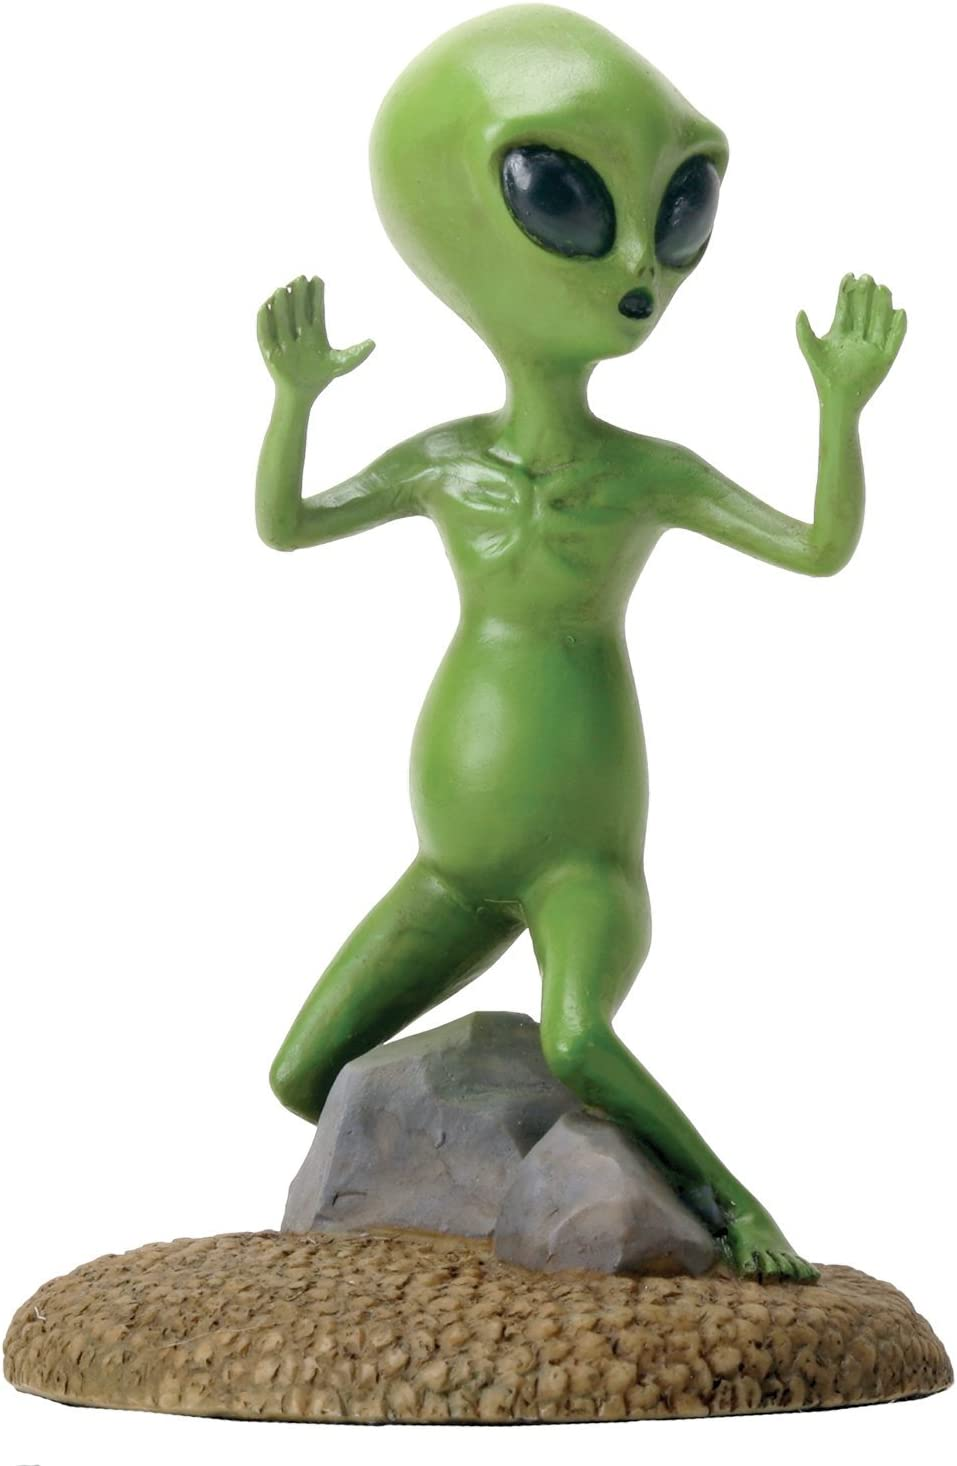 YTC Small Green Colored Alien Figurine Statue with Hands Up Escaping